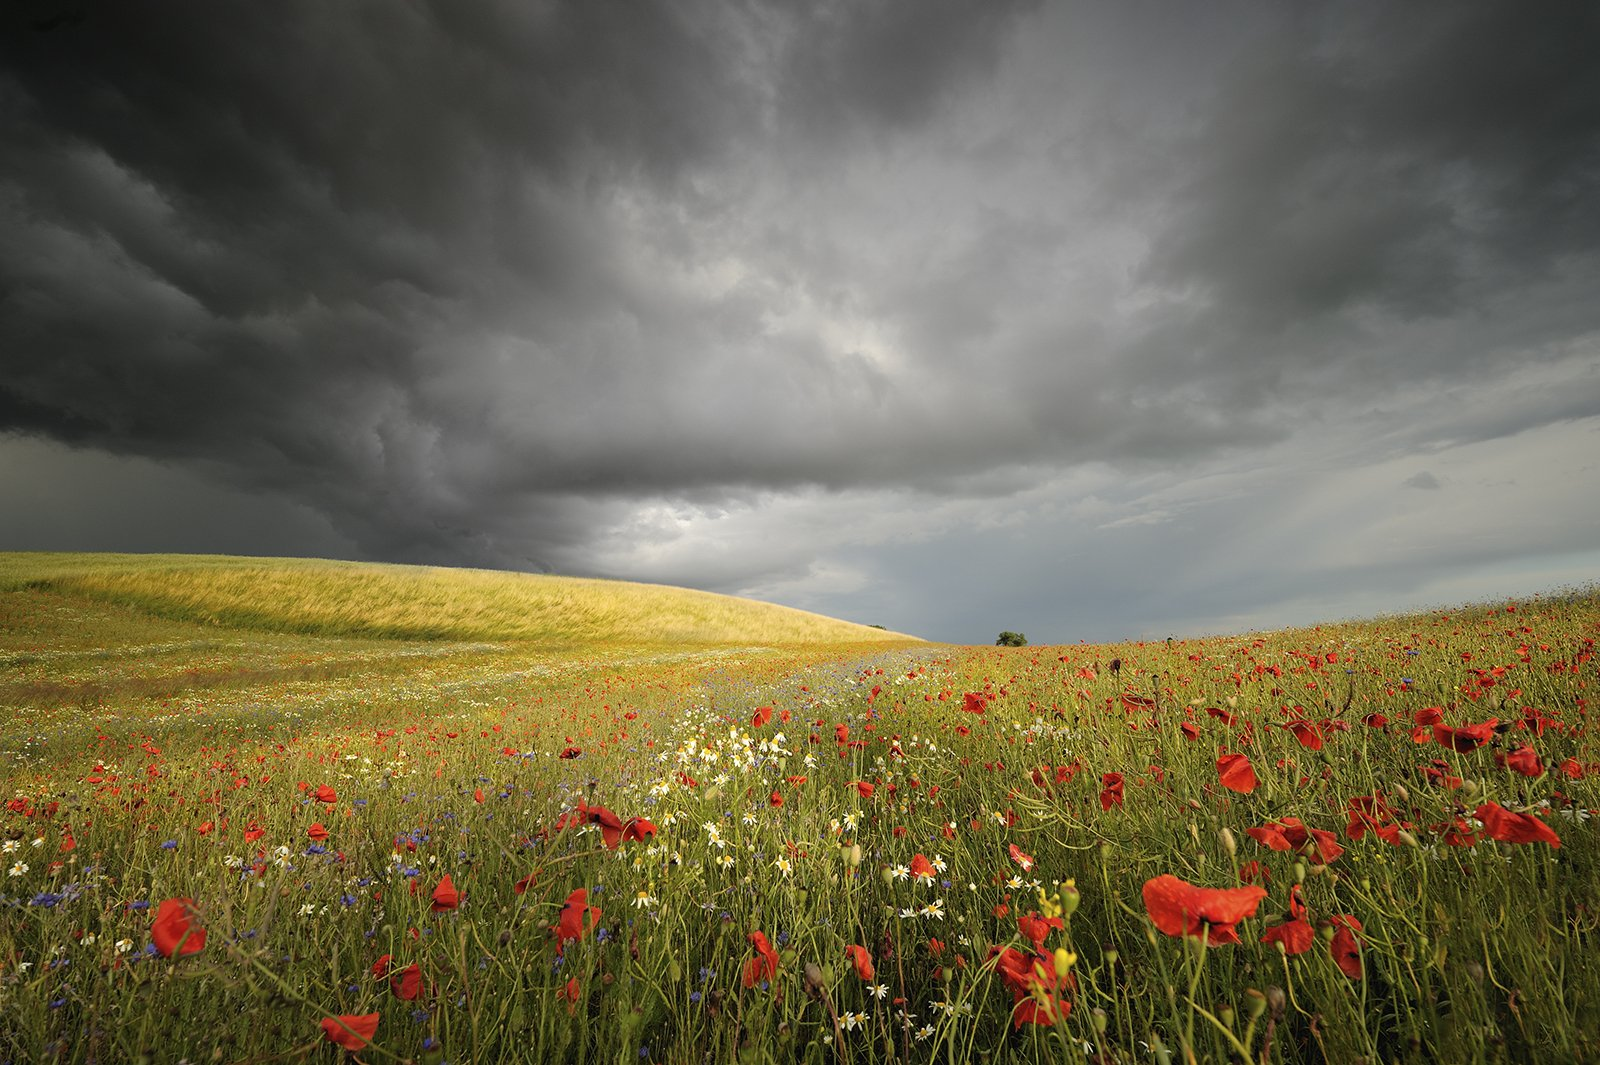 outdoor, grain, blooming, meadow, grow, natural, green, storm, spring, dramatically, petal, red, flower, field, botanical, ears, panoramic, sunny, grass, summer, sun, clouds, anxiety, flora, poppy, garden, grimly, blue, sky, plants, background, wild, natu, Jan Siemiński